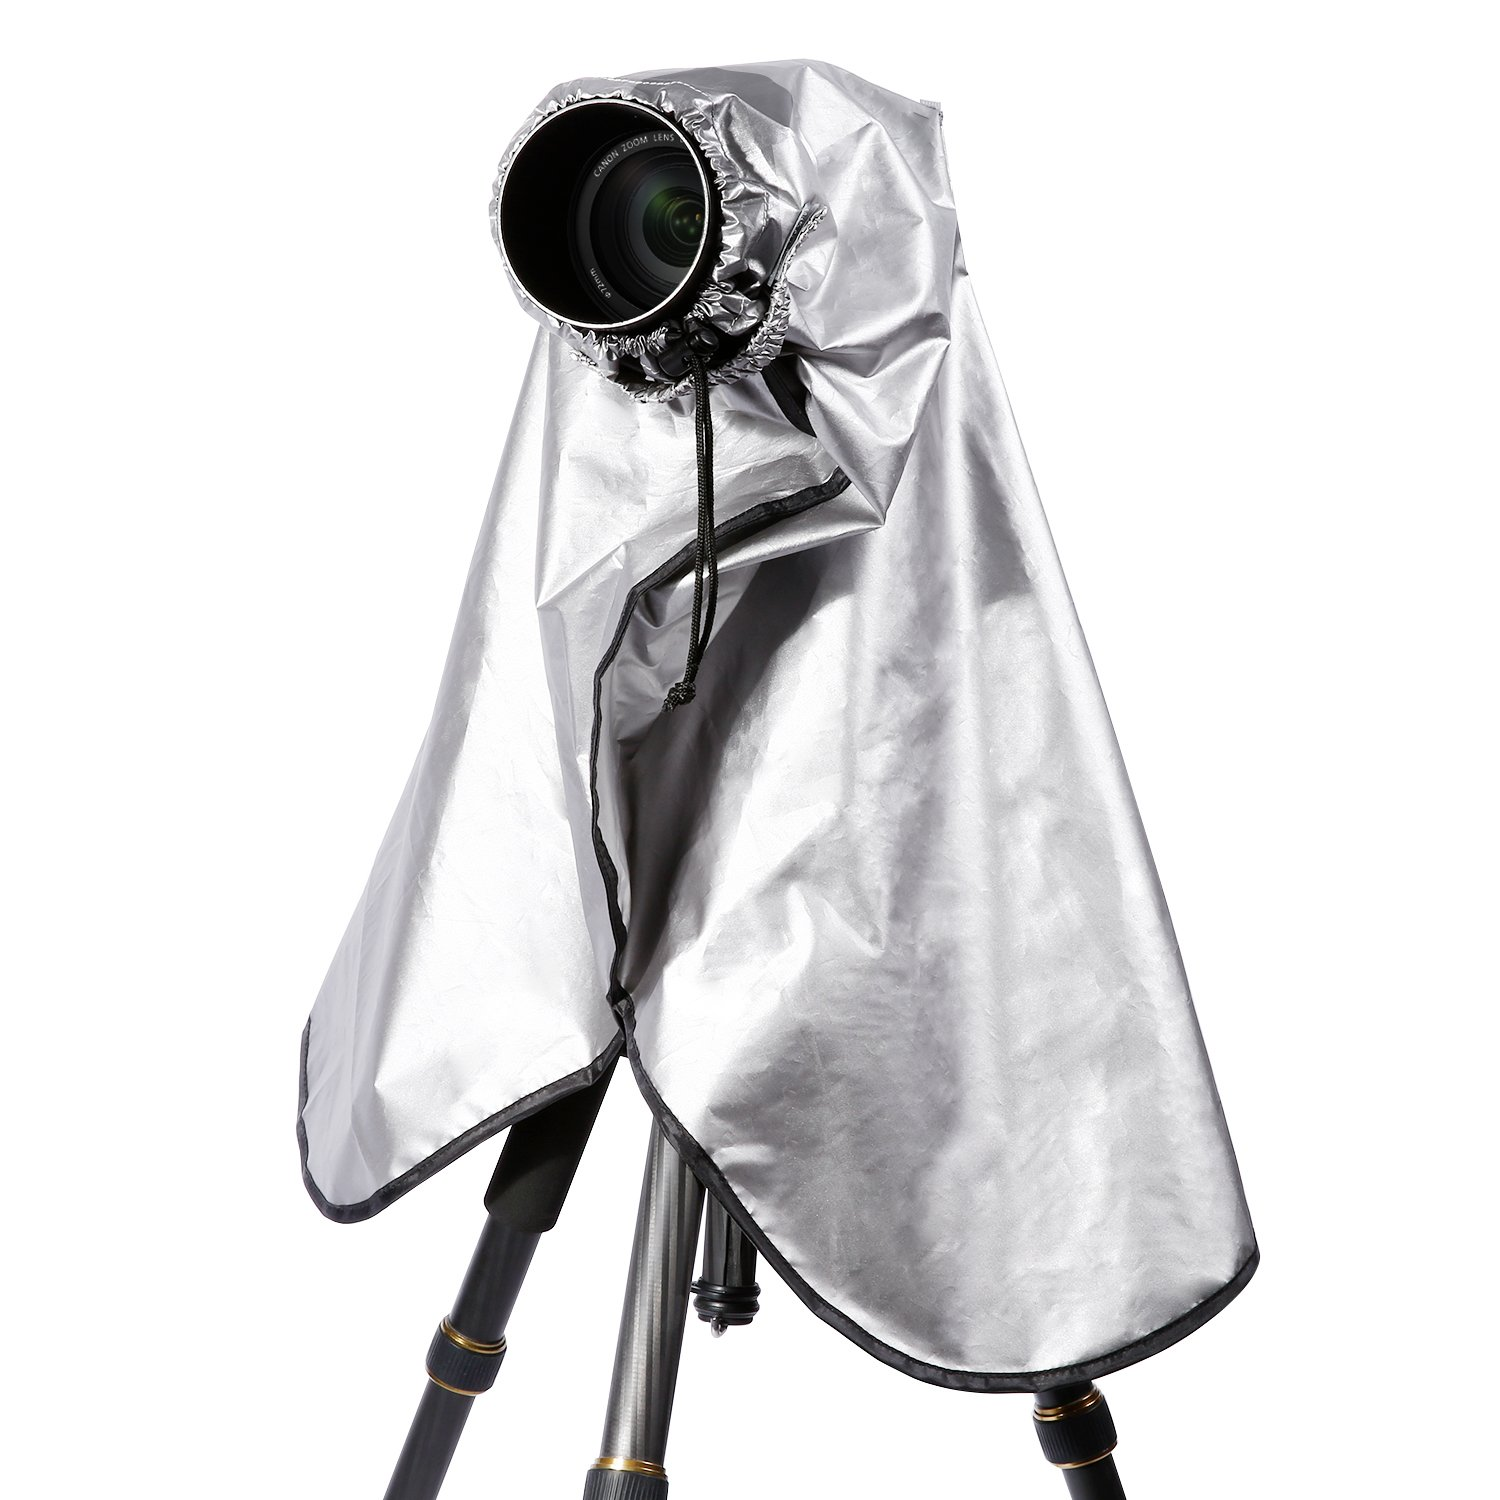 Neewer Extra-Long Waterproof Camera Rain Coat Rain Cover for Canon Nikon Sony and Other DSLR Cameras, Lens and Tripods (Metallic Gray) by Neewer